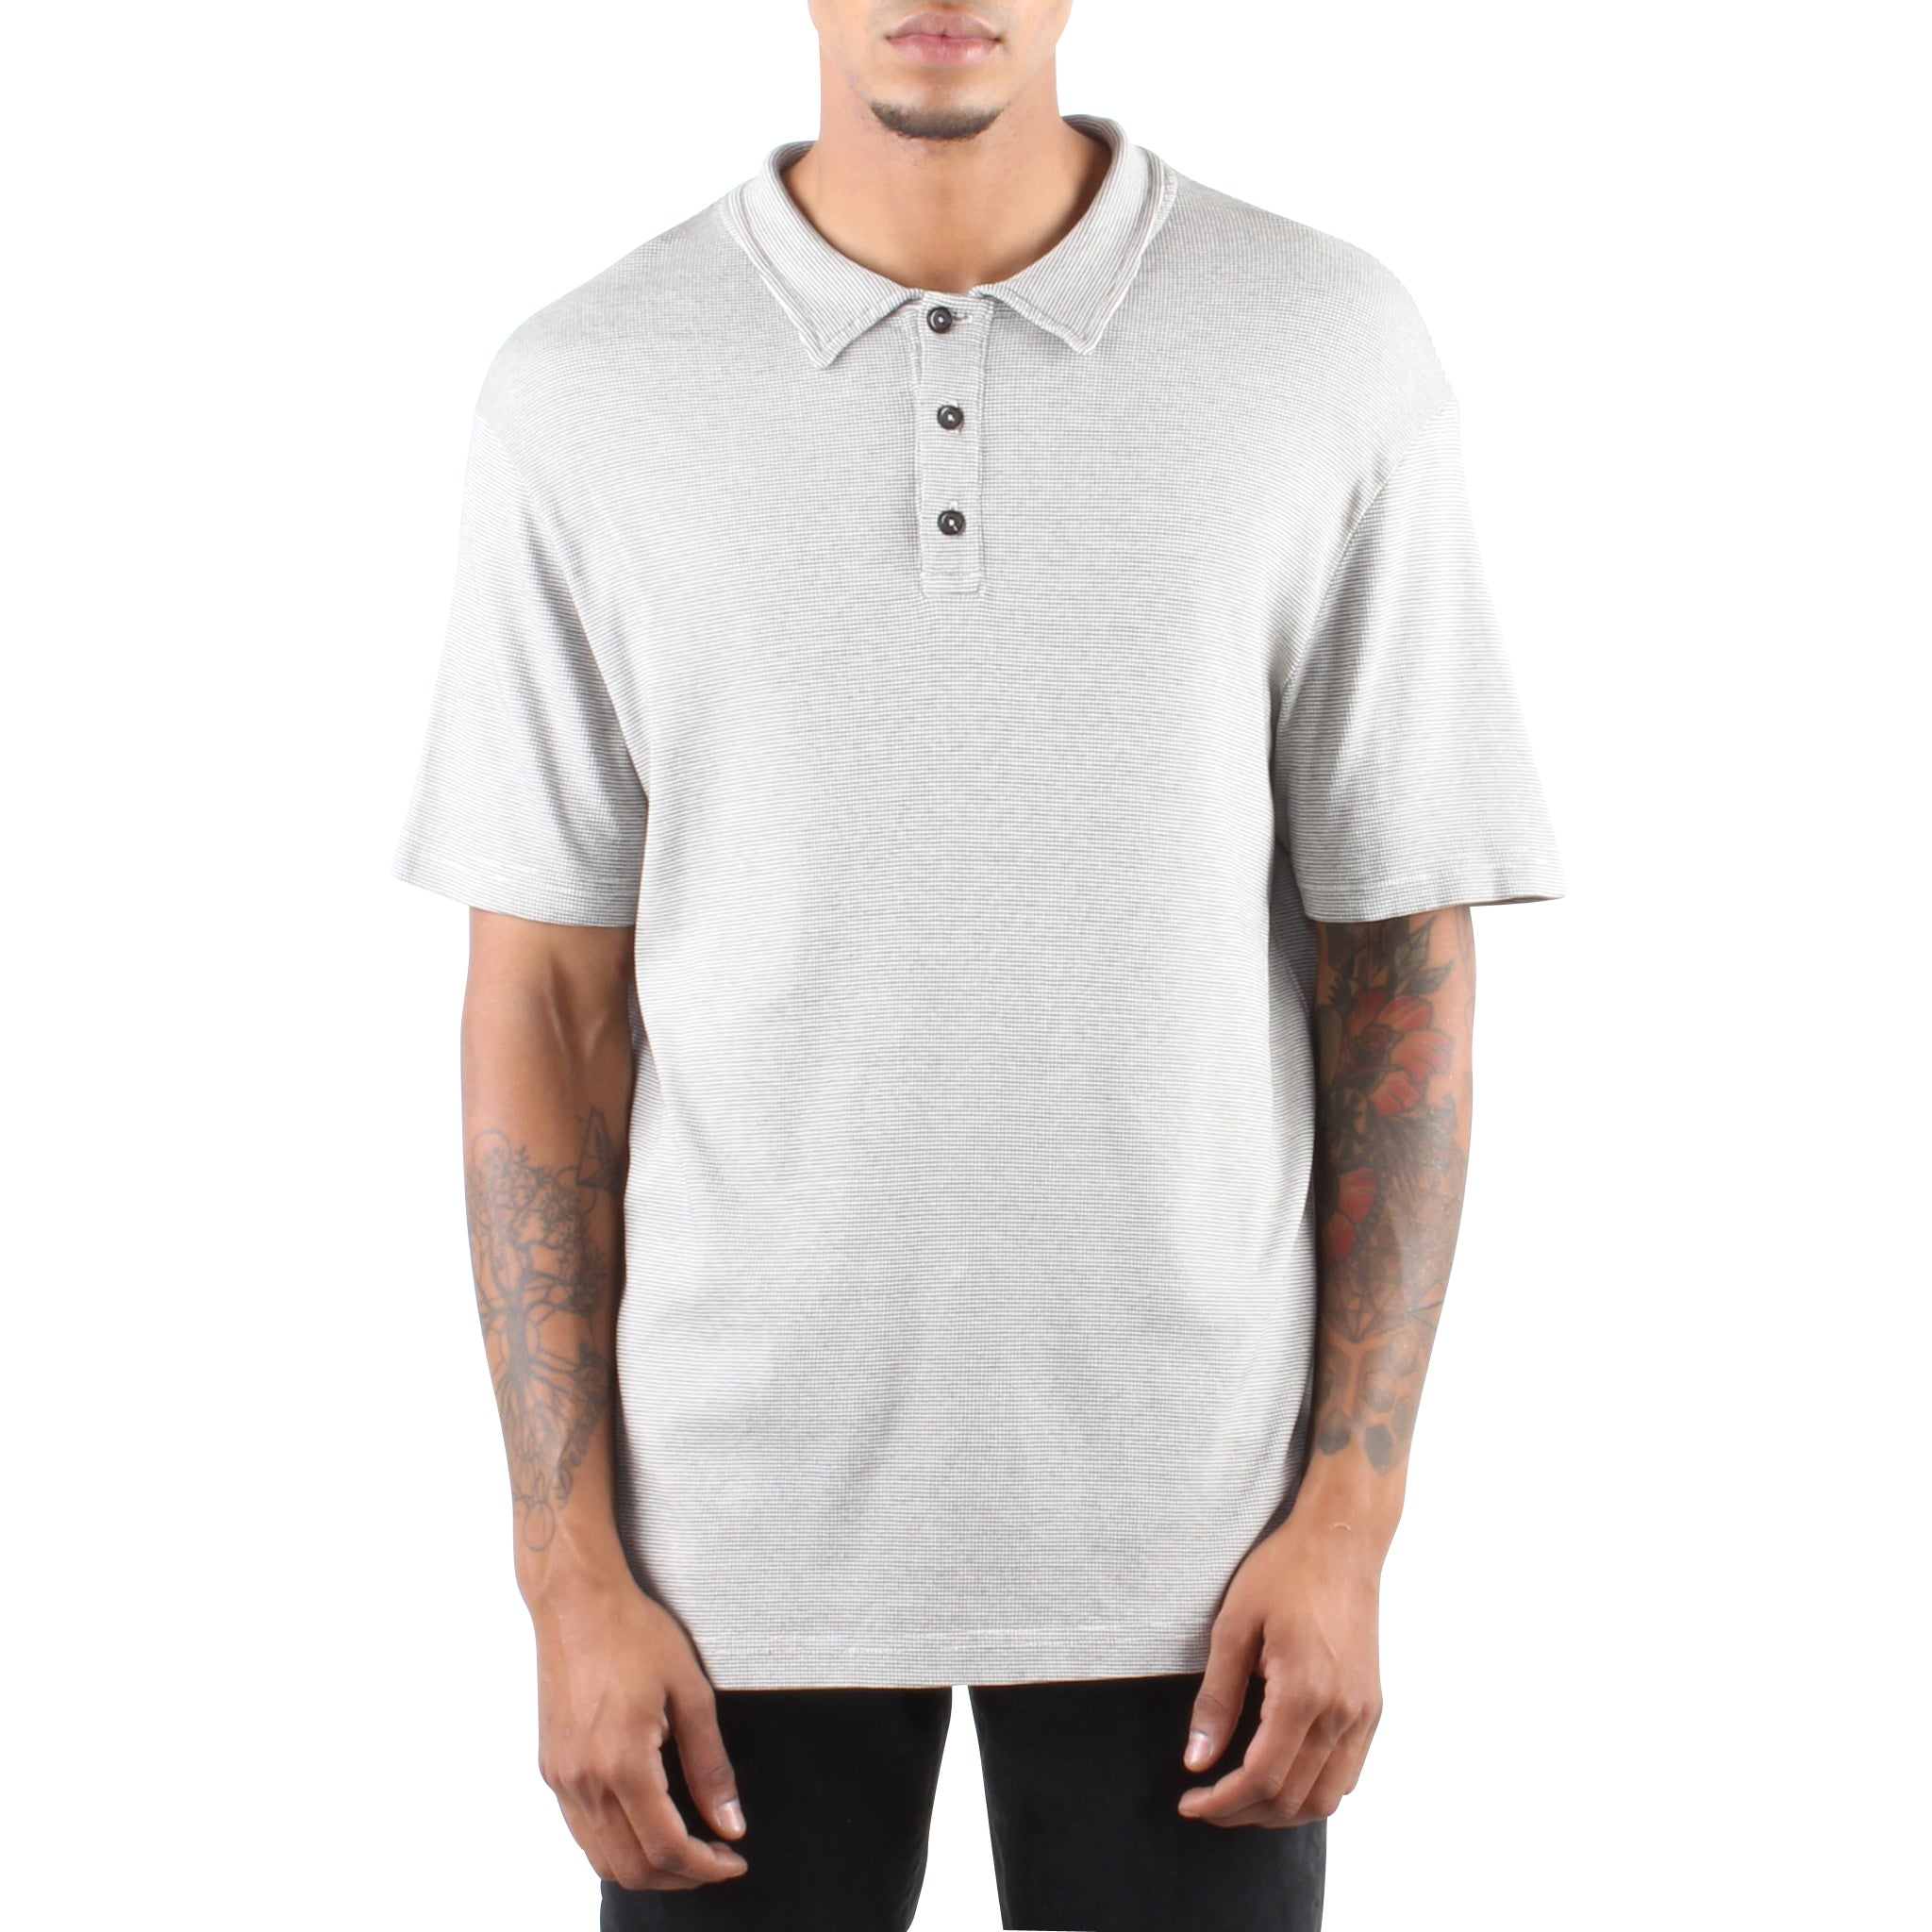 LIGHT GREY POLO